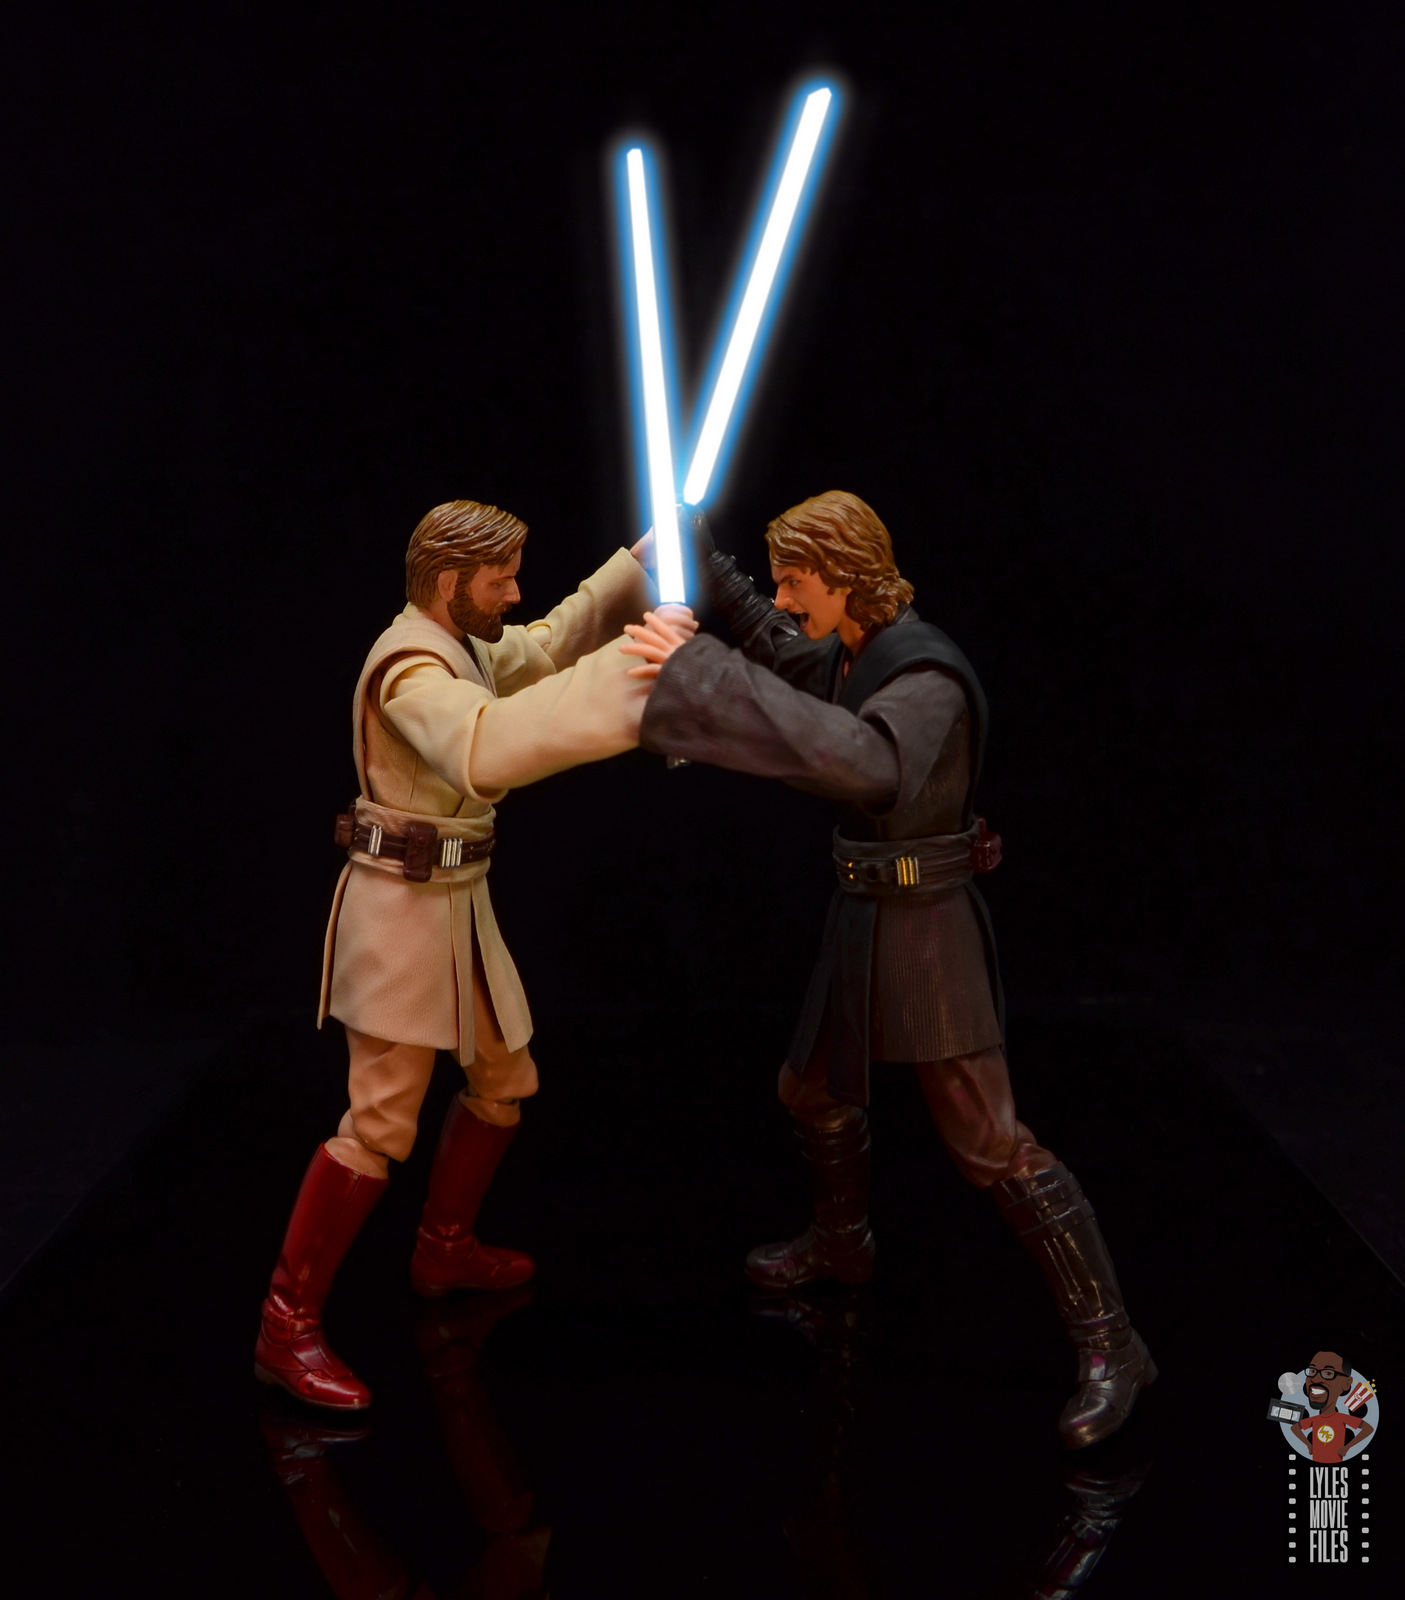 Sh Figuarts Obi Wan Kenobi Revenge Of The Sith Figure Review Vs Anakin Lyles Movie Files